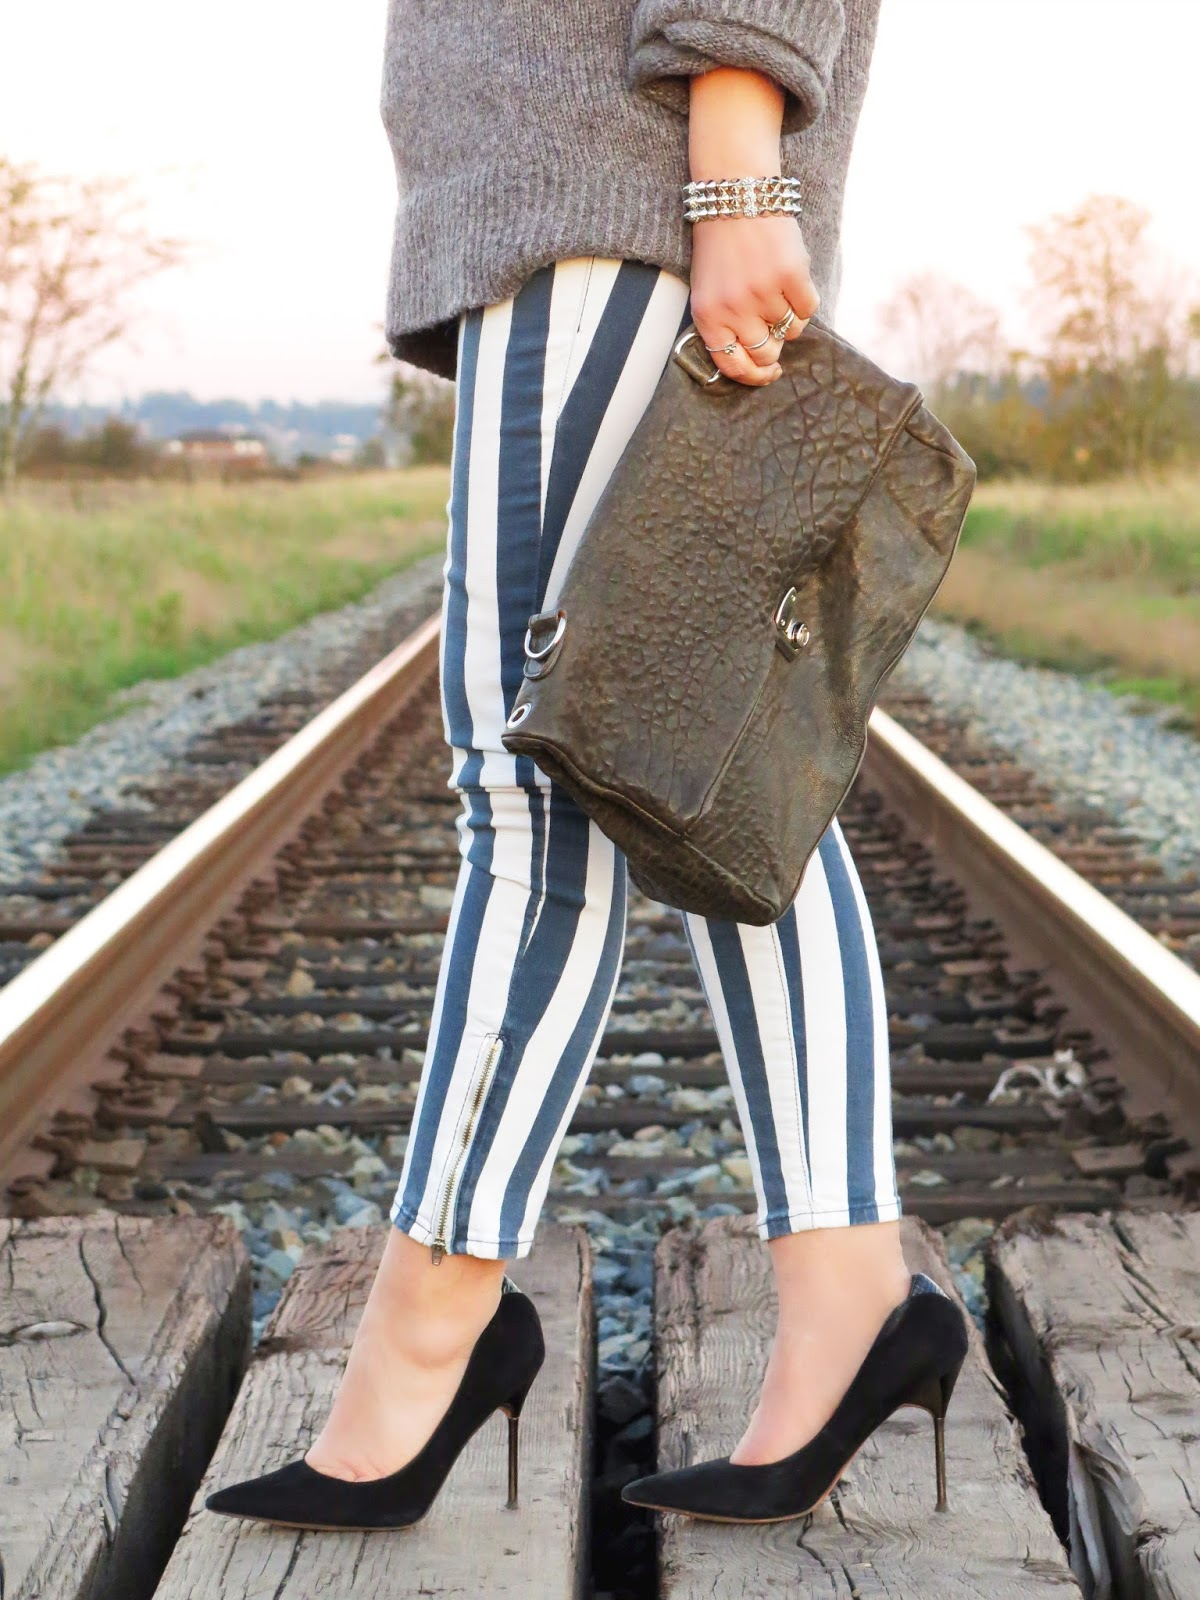 oversized turtleneck sweater, striped jeans, pebble-textured satchel, and Sam Edelman pumps